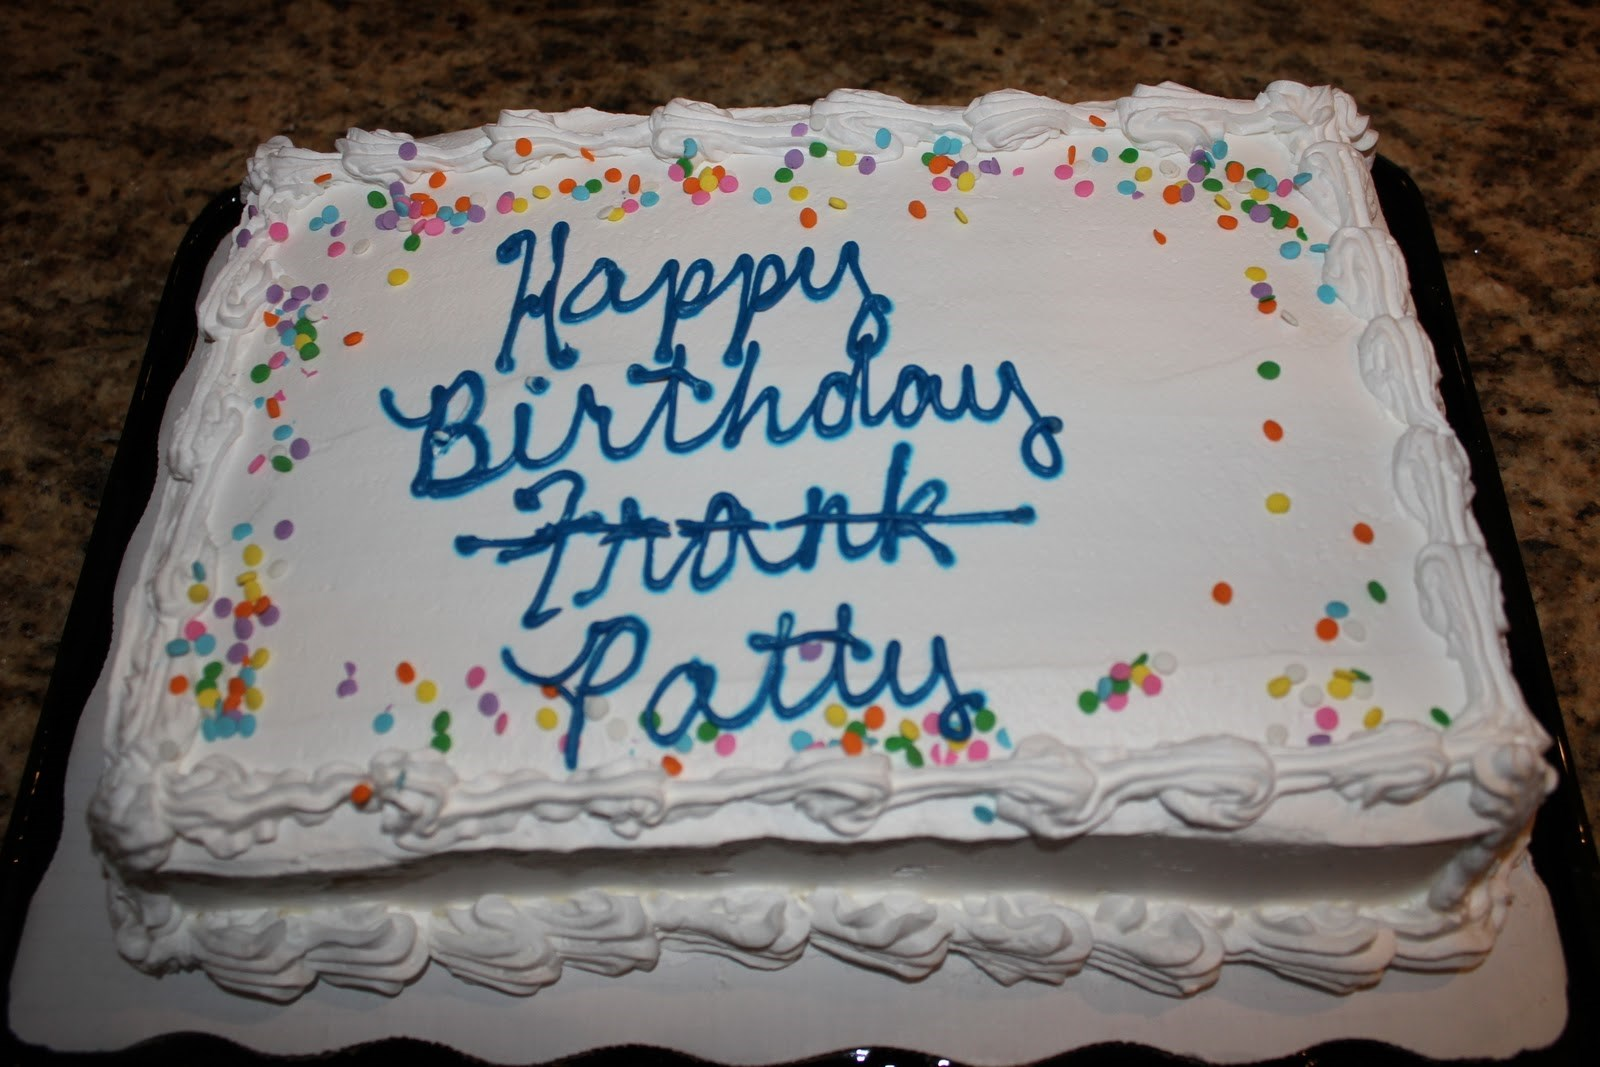 Astounding 25 Terribly Unfortunate But Hilarious Birthday Cakes For An Funny Birthday Cards Online Overcheapnameinfo